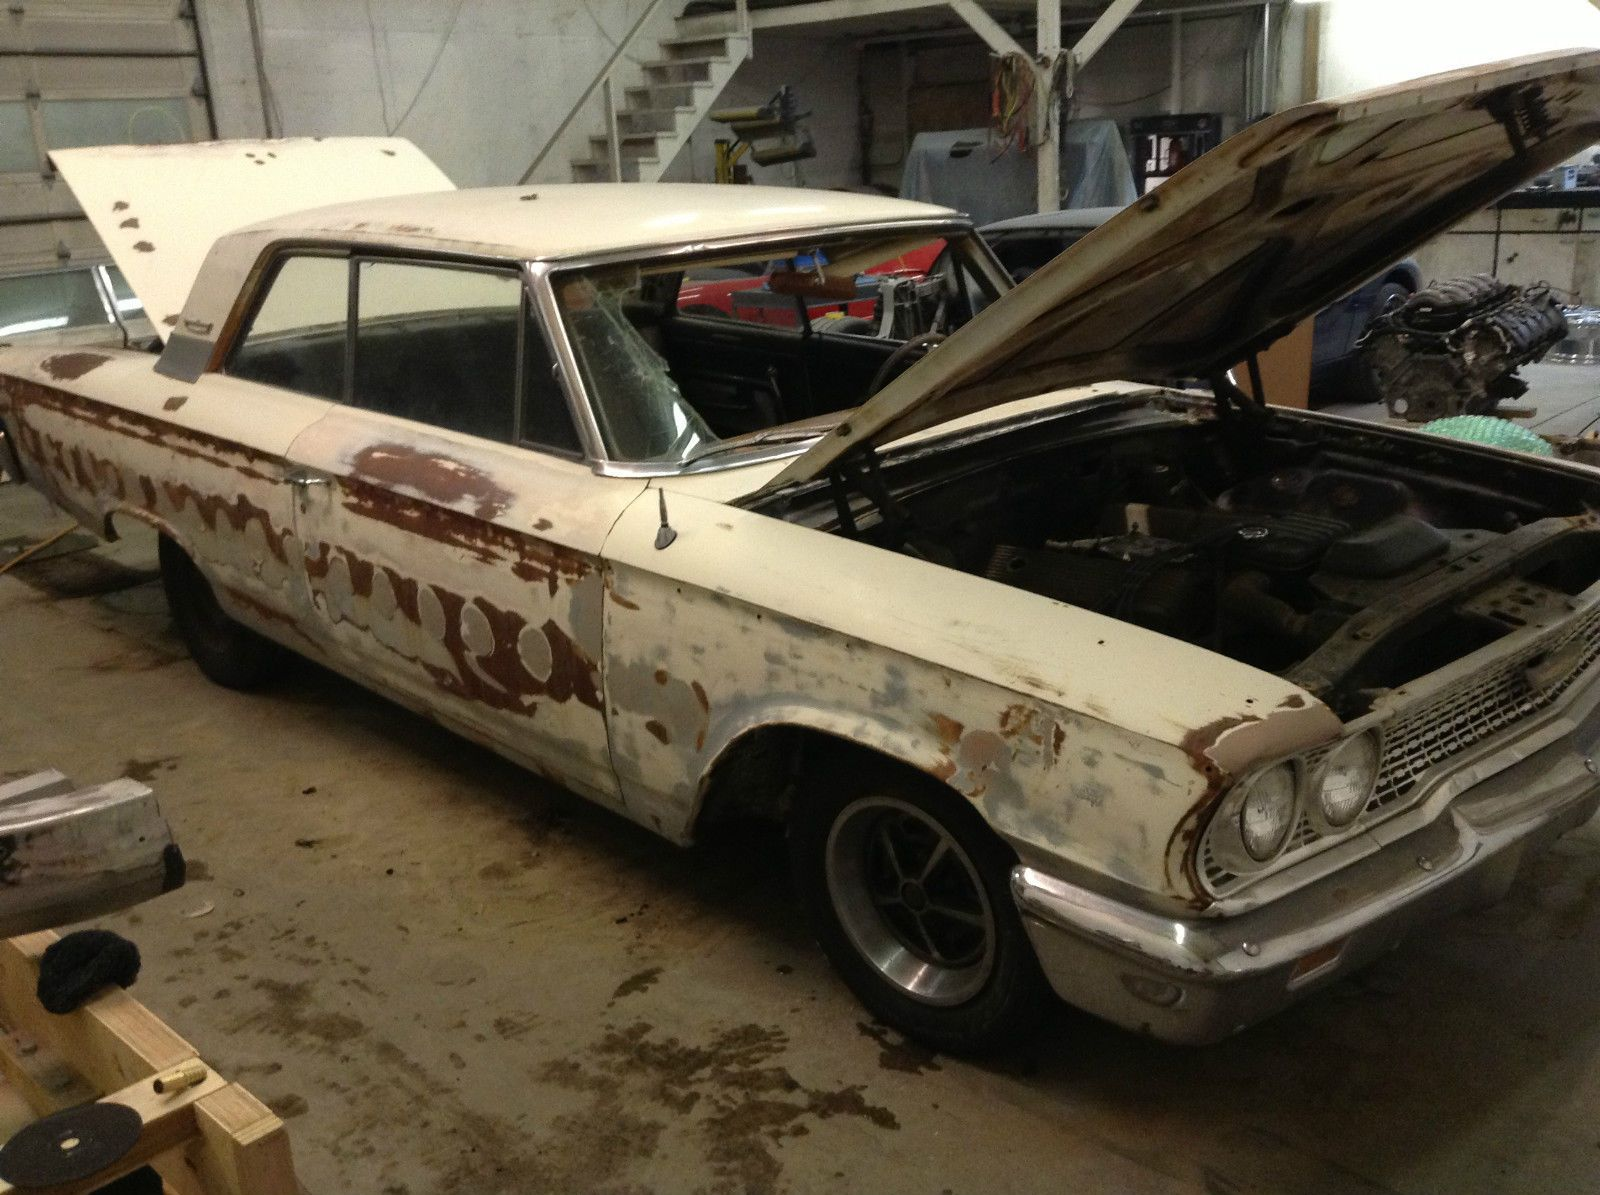 1963 Ford Galaxie 500 Project Car For Sale | Ford Galaxie ...